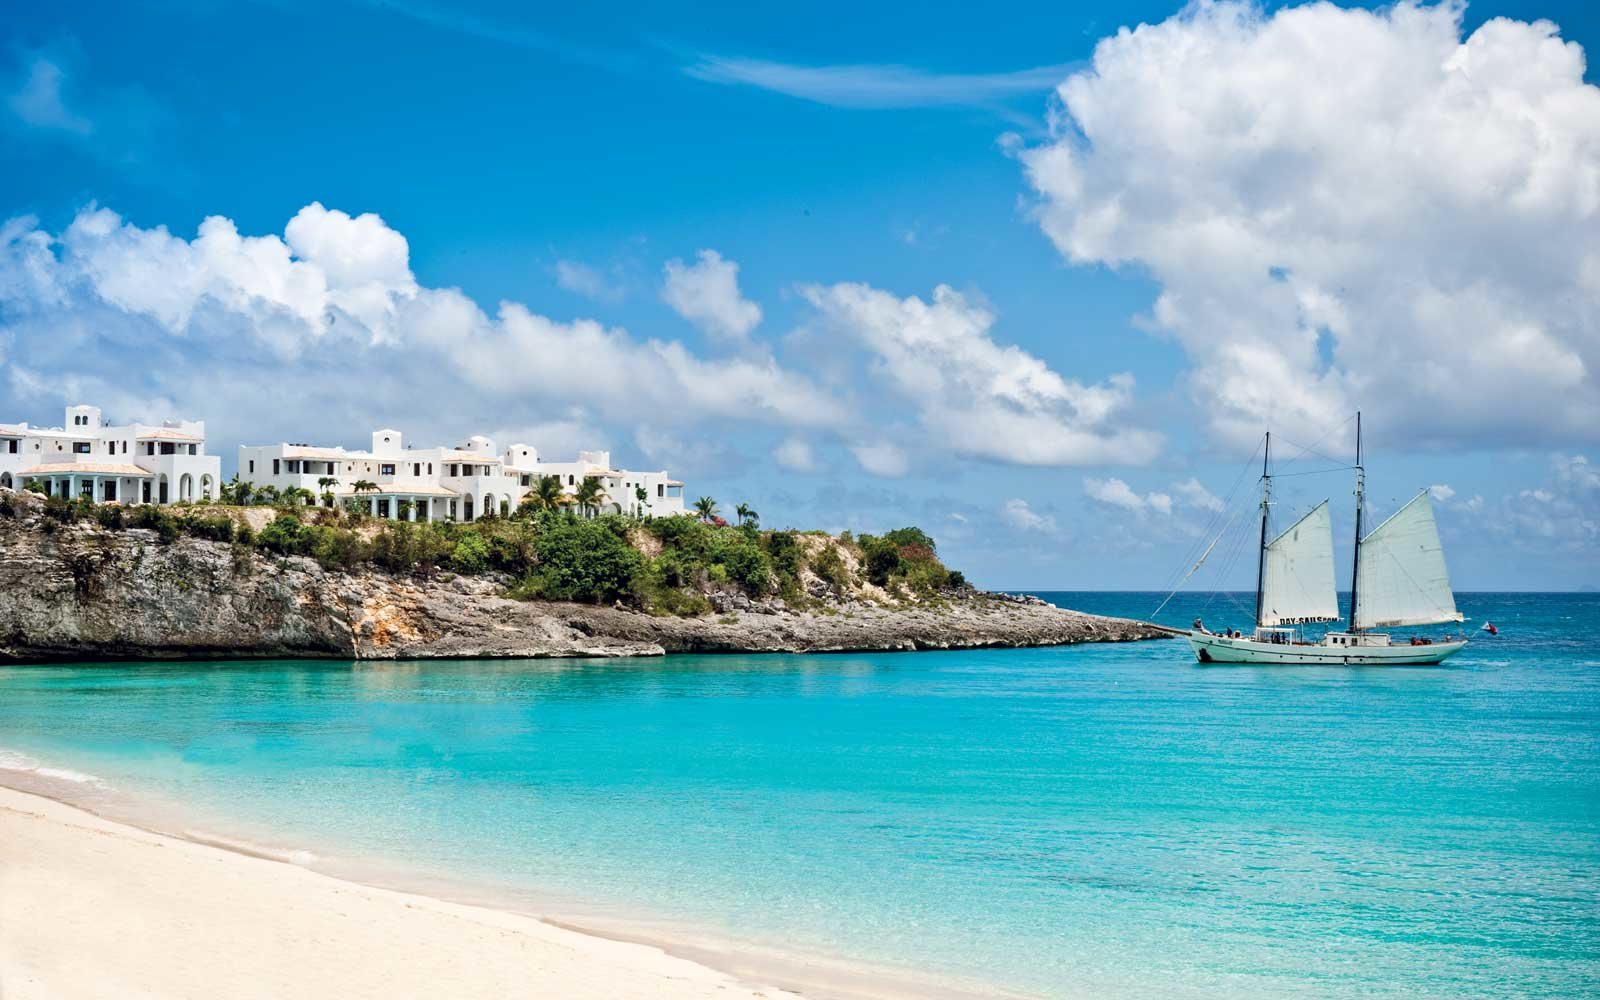 View of the Belmon La Samanna resort in St Martin